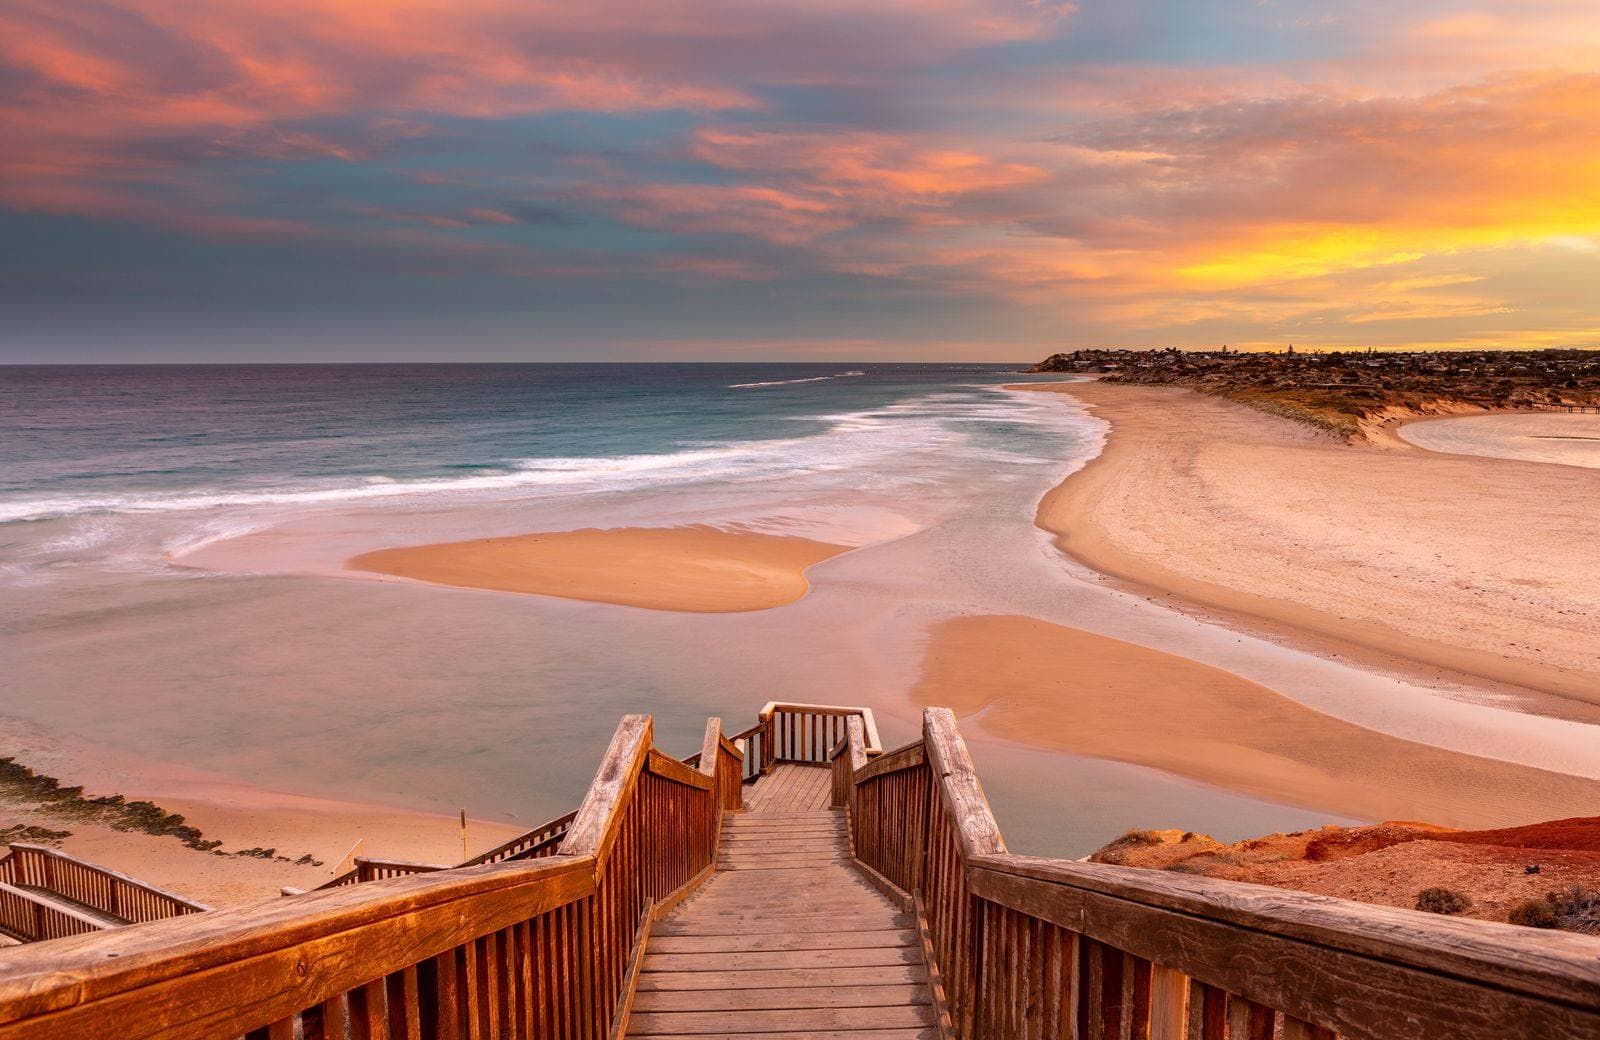 An American Working in Australia and Living for Under $750 USD ($1000AUD) / Month